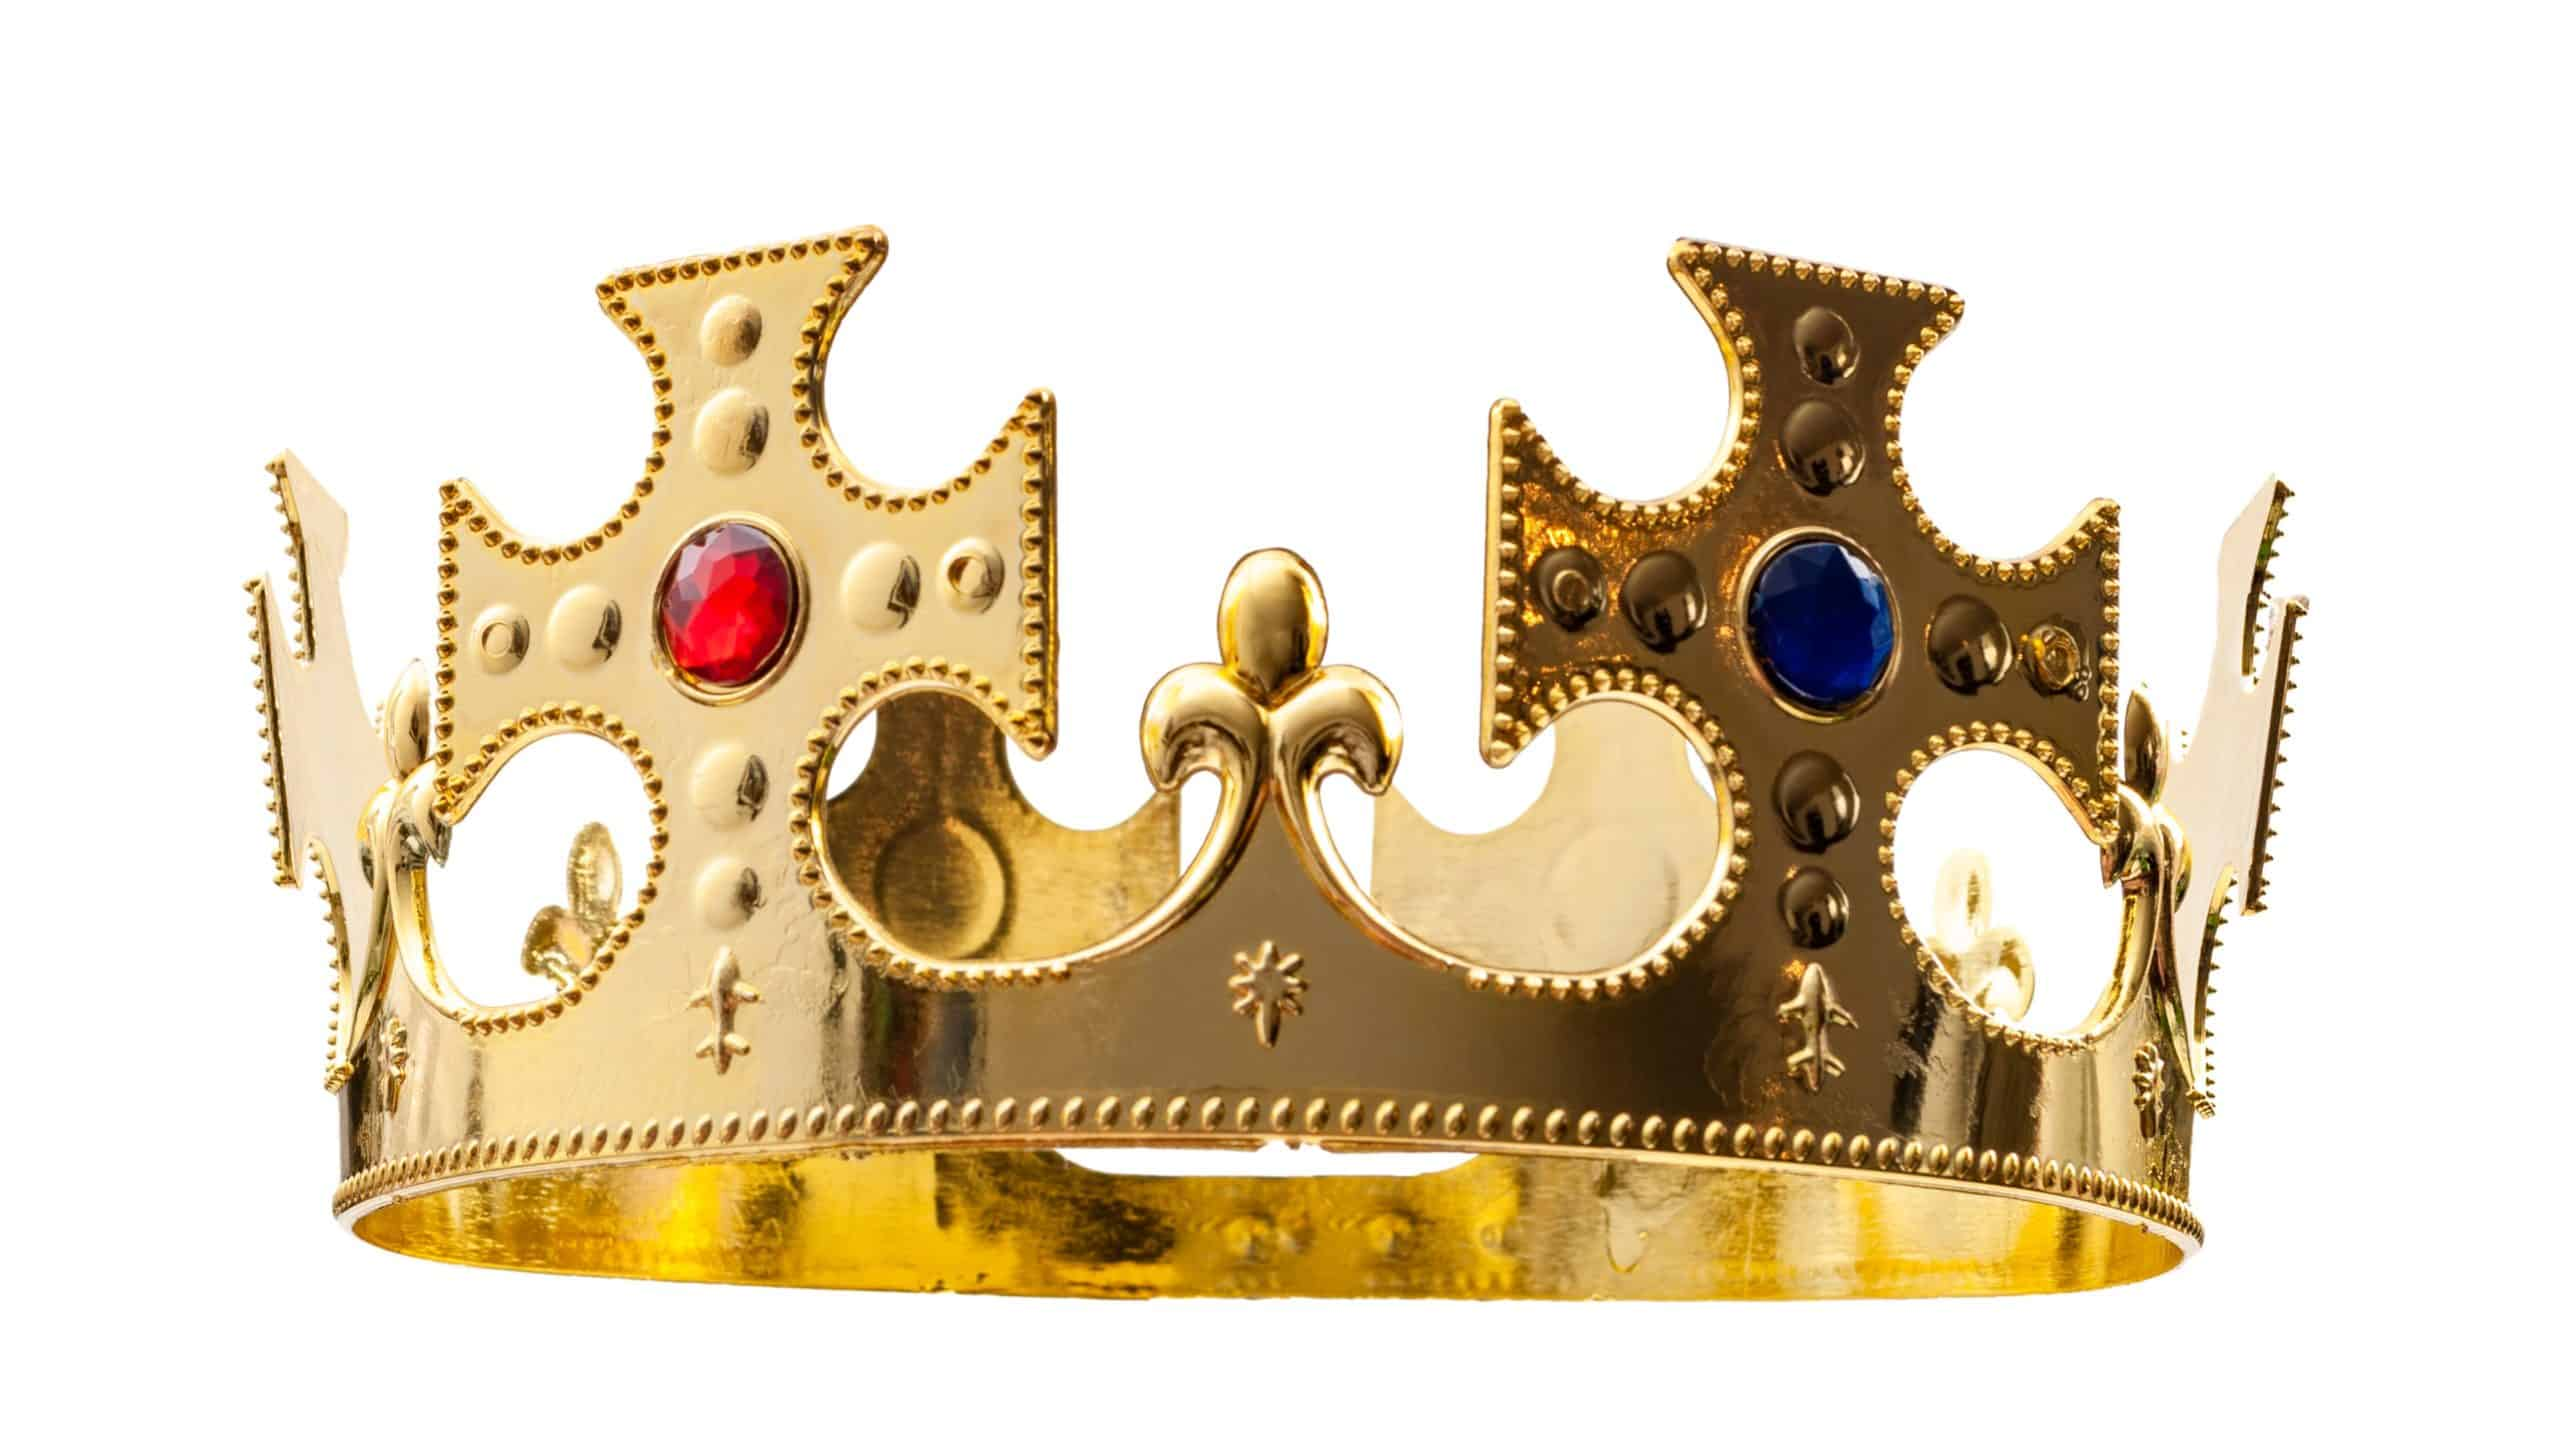 bejewelled crown representing asx dividend king